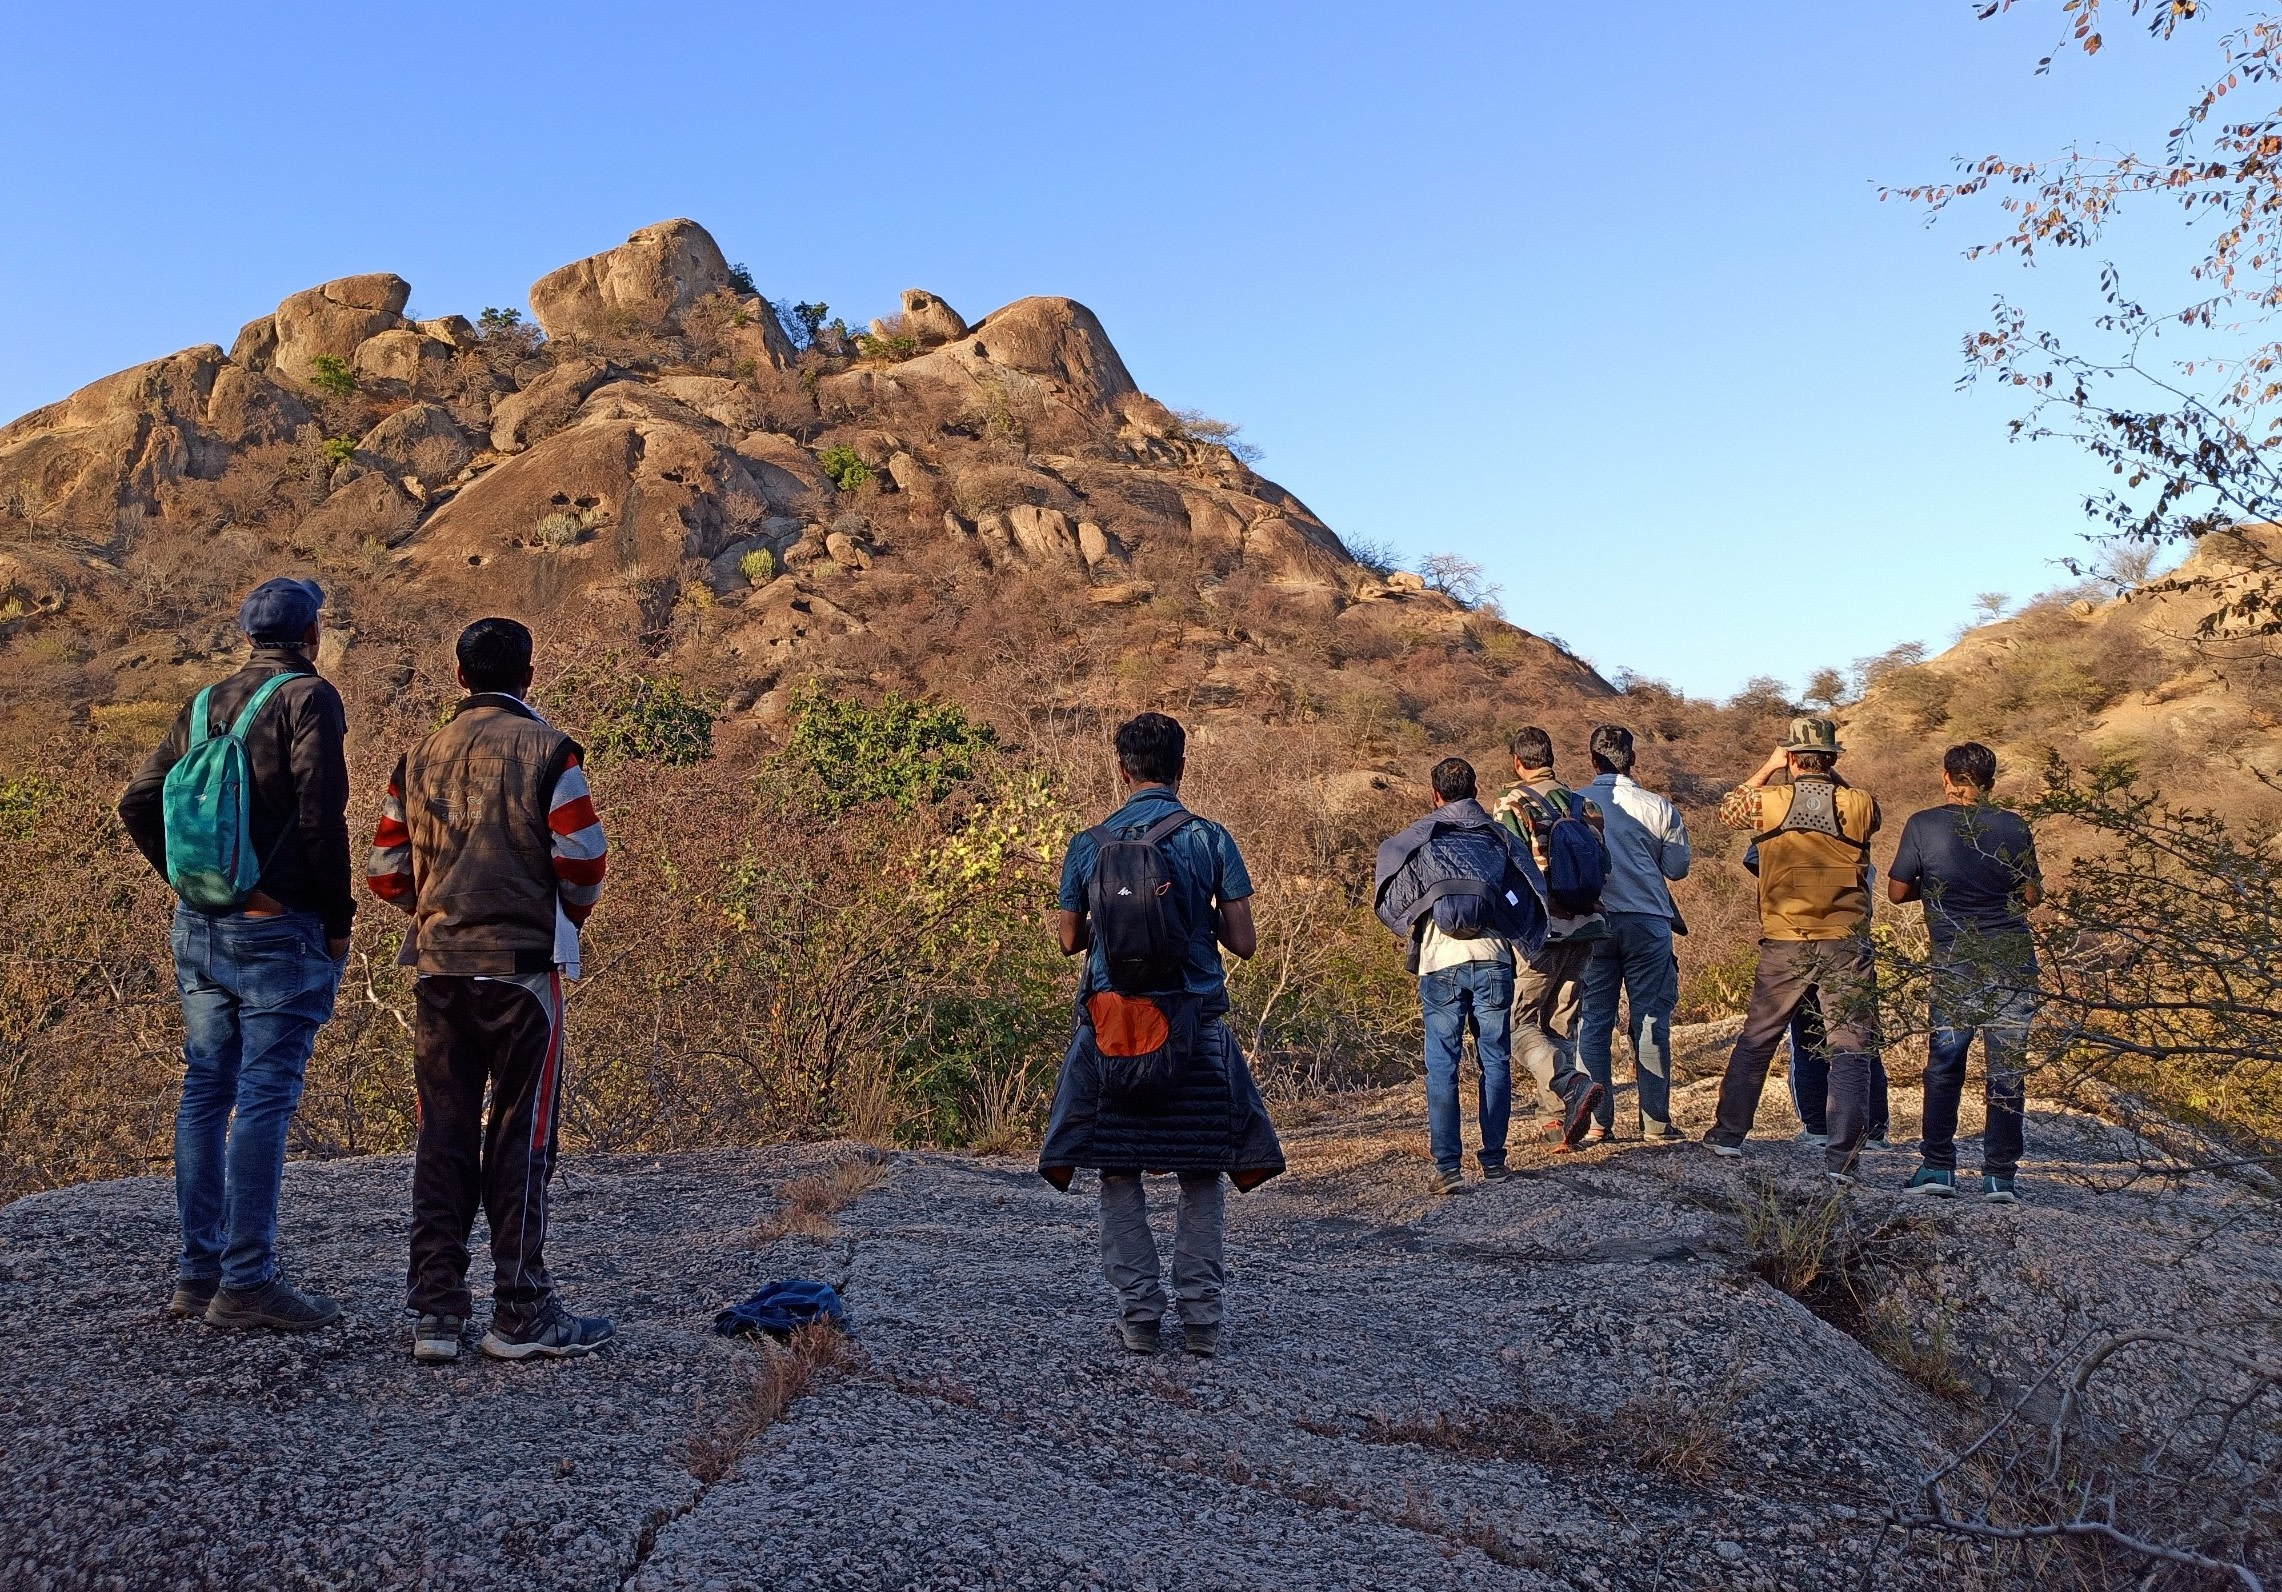 A group of birding enthusiasts wait for a hyena to remerge from its den on a hill in the Kumbalgarh Wildlife Sanctuary in the Aravallis. Photo: Rohit Kumar  An oriental honey buzzard takes off from its perch in Rajasthan's Todgarh-Raoli Wildlife Sanctuary. These buzzards can be distinguished from other raptors by their pigeon-like heads. Photo: Mayank Bohra